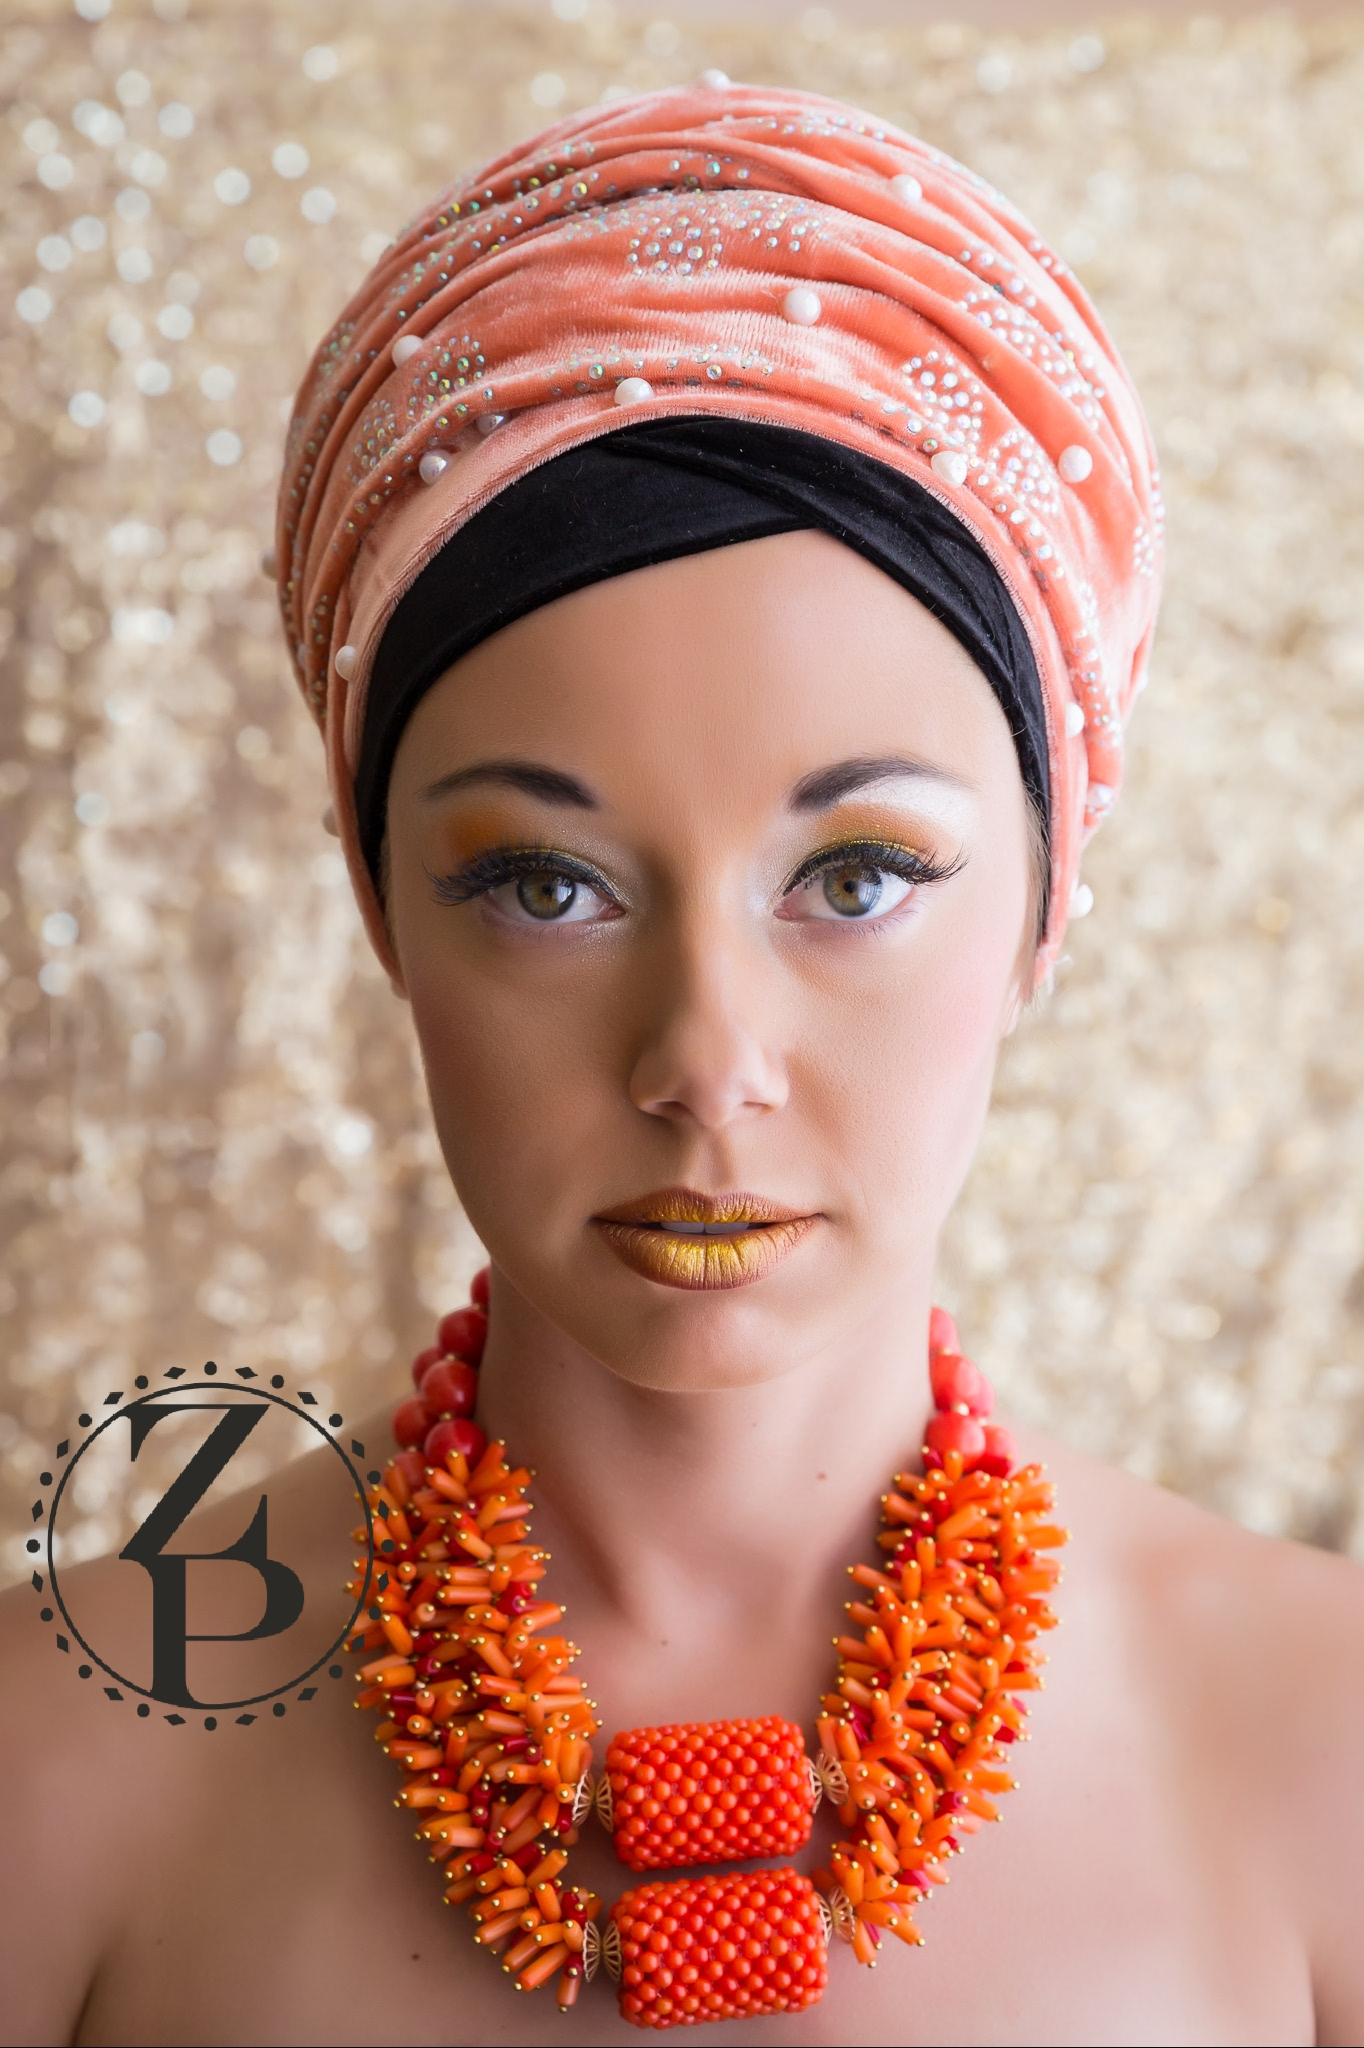 zuri-perle-nigerian-wedding-jewelry-handcrafted-bridal-coral-jewelry.jpg